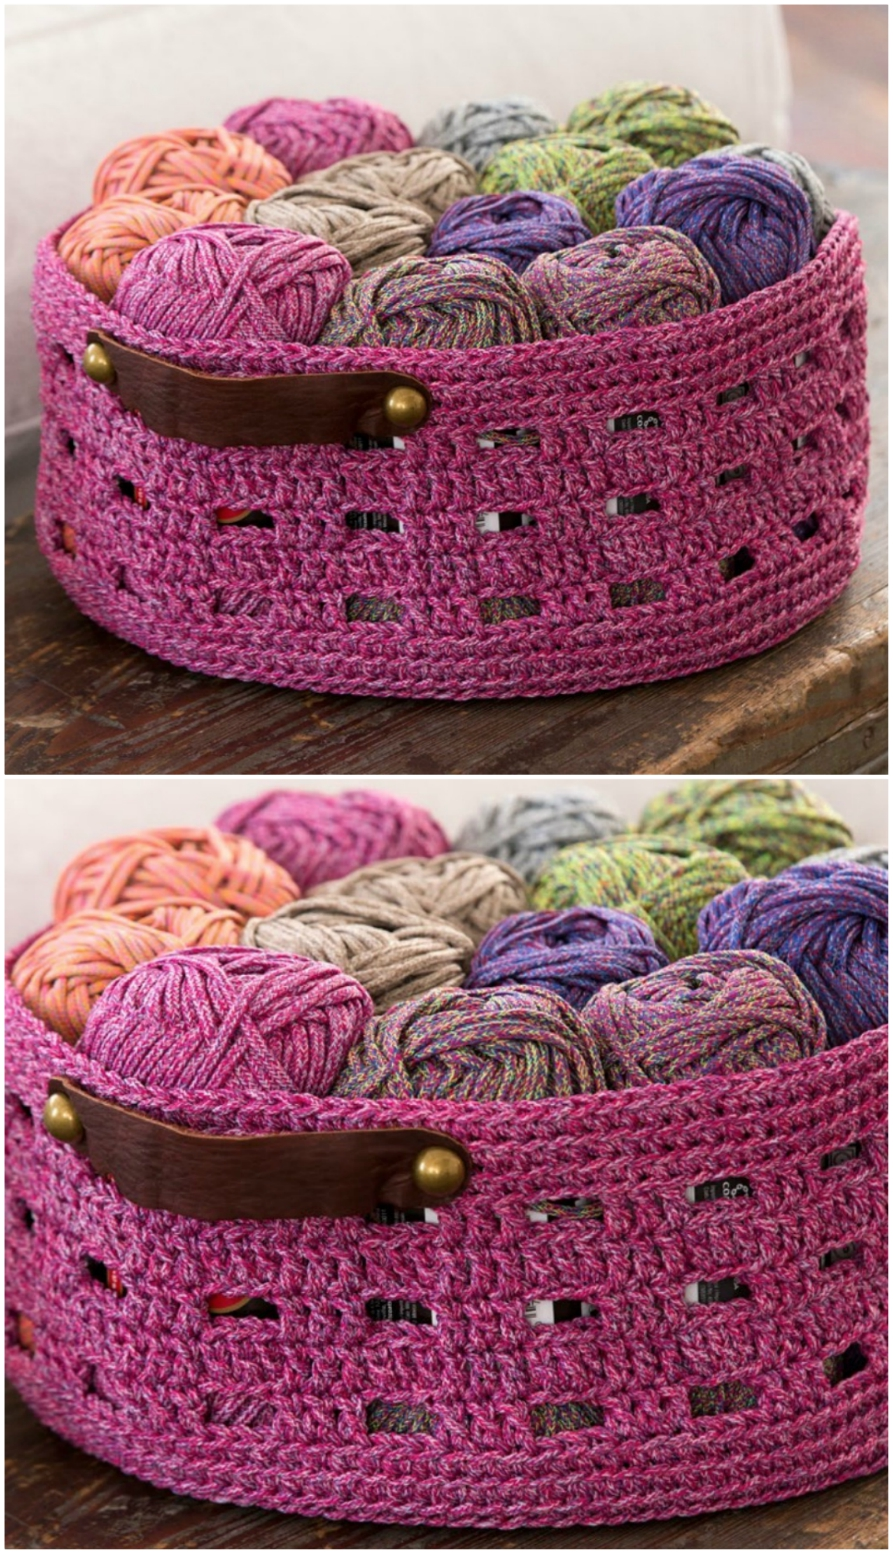 Crochet Storage Baskets Free Patterns | The WHOot